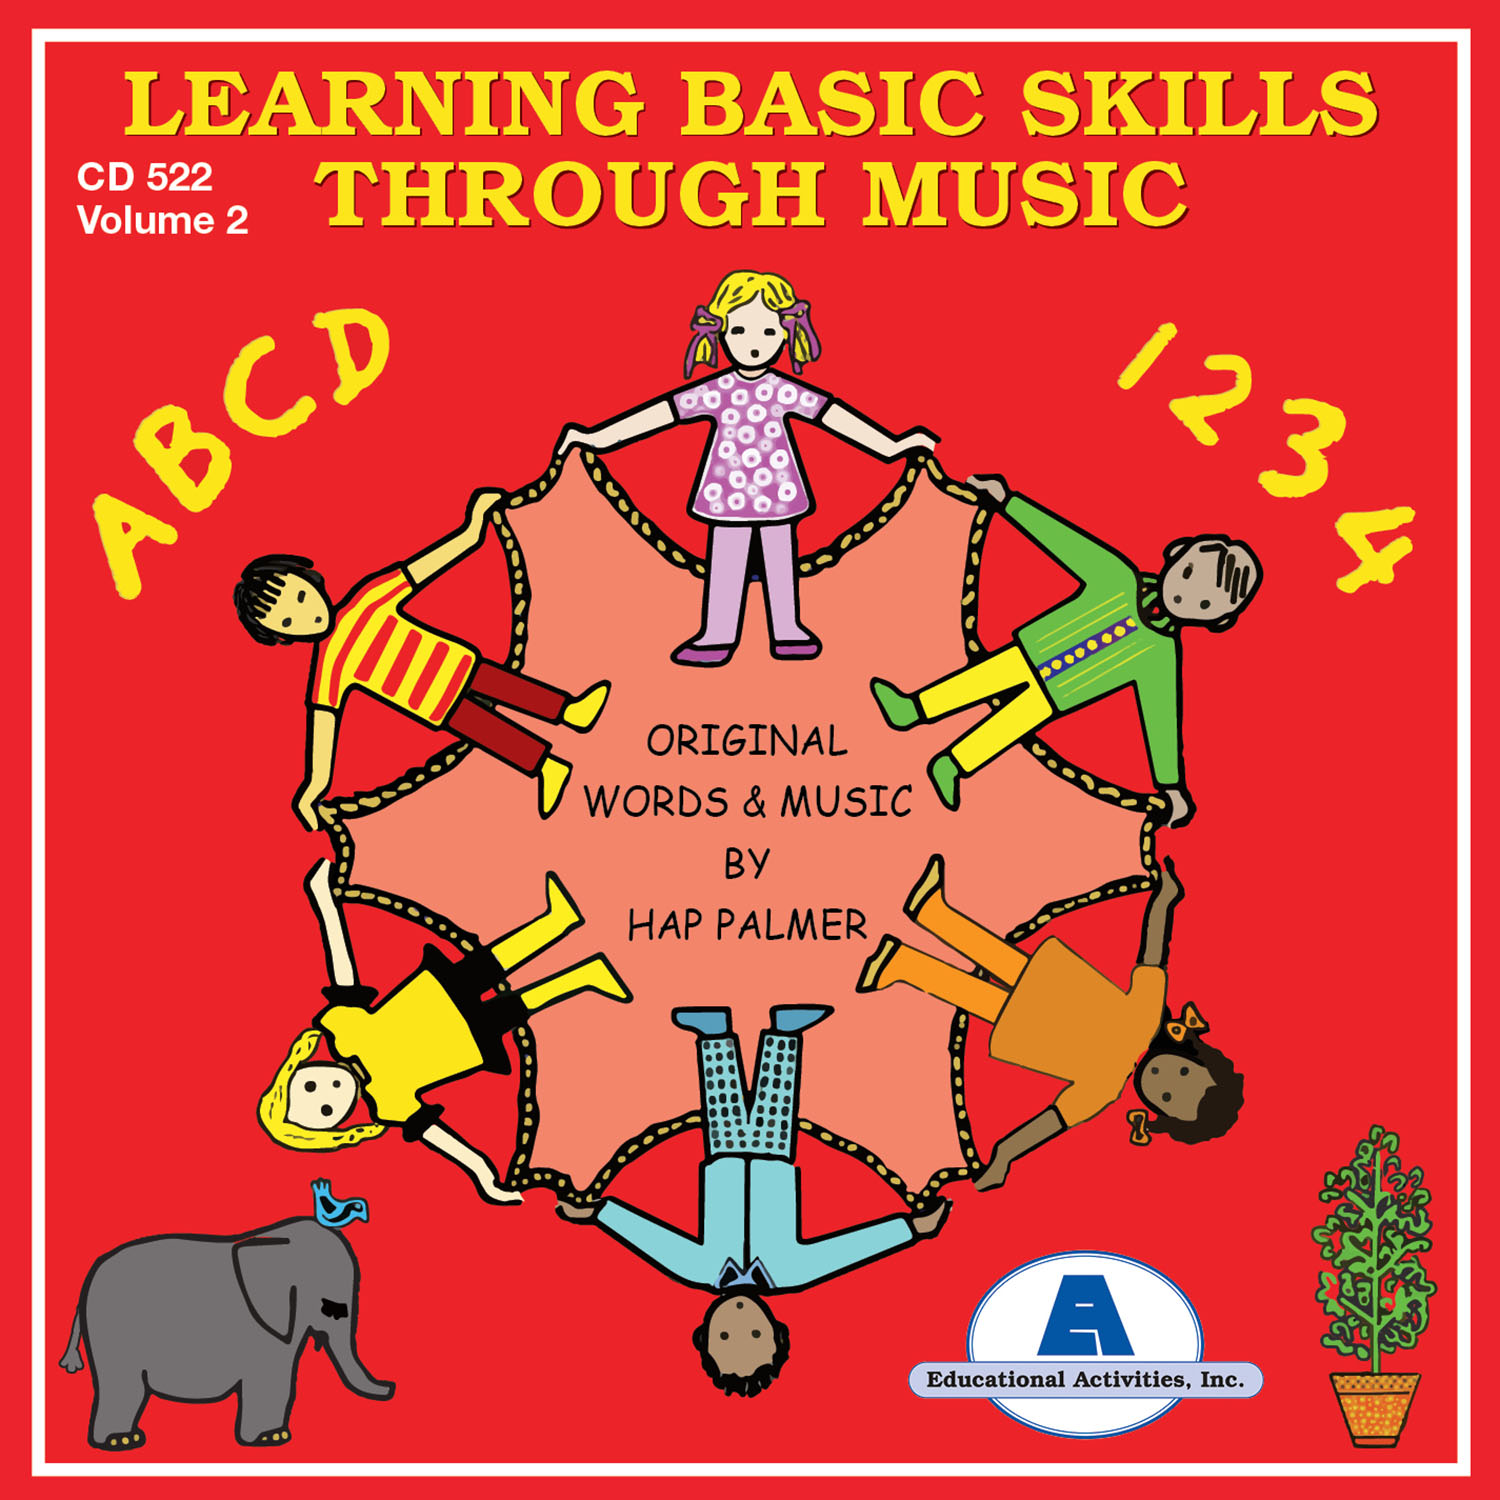 Learning Basic Skills Through Music Volume 2